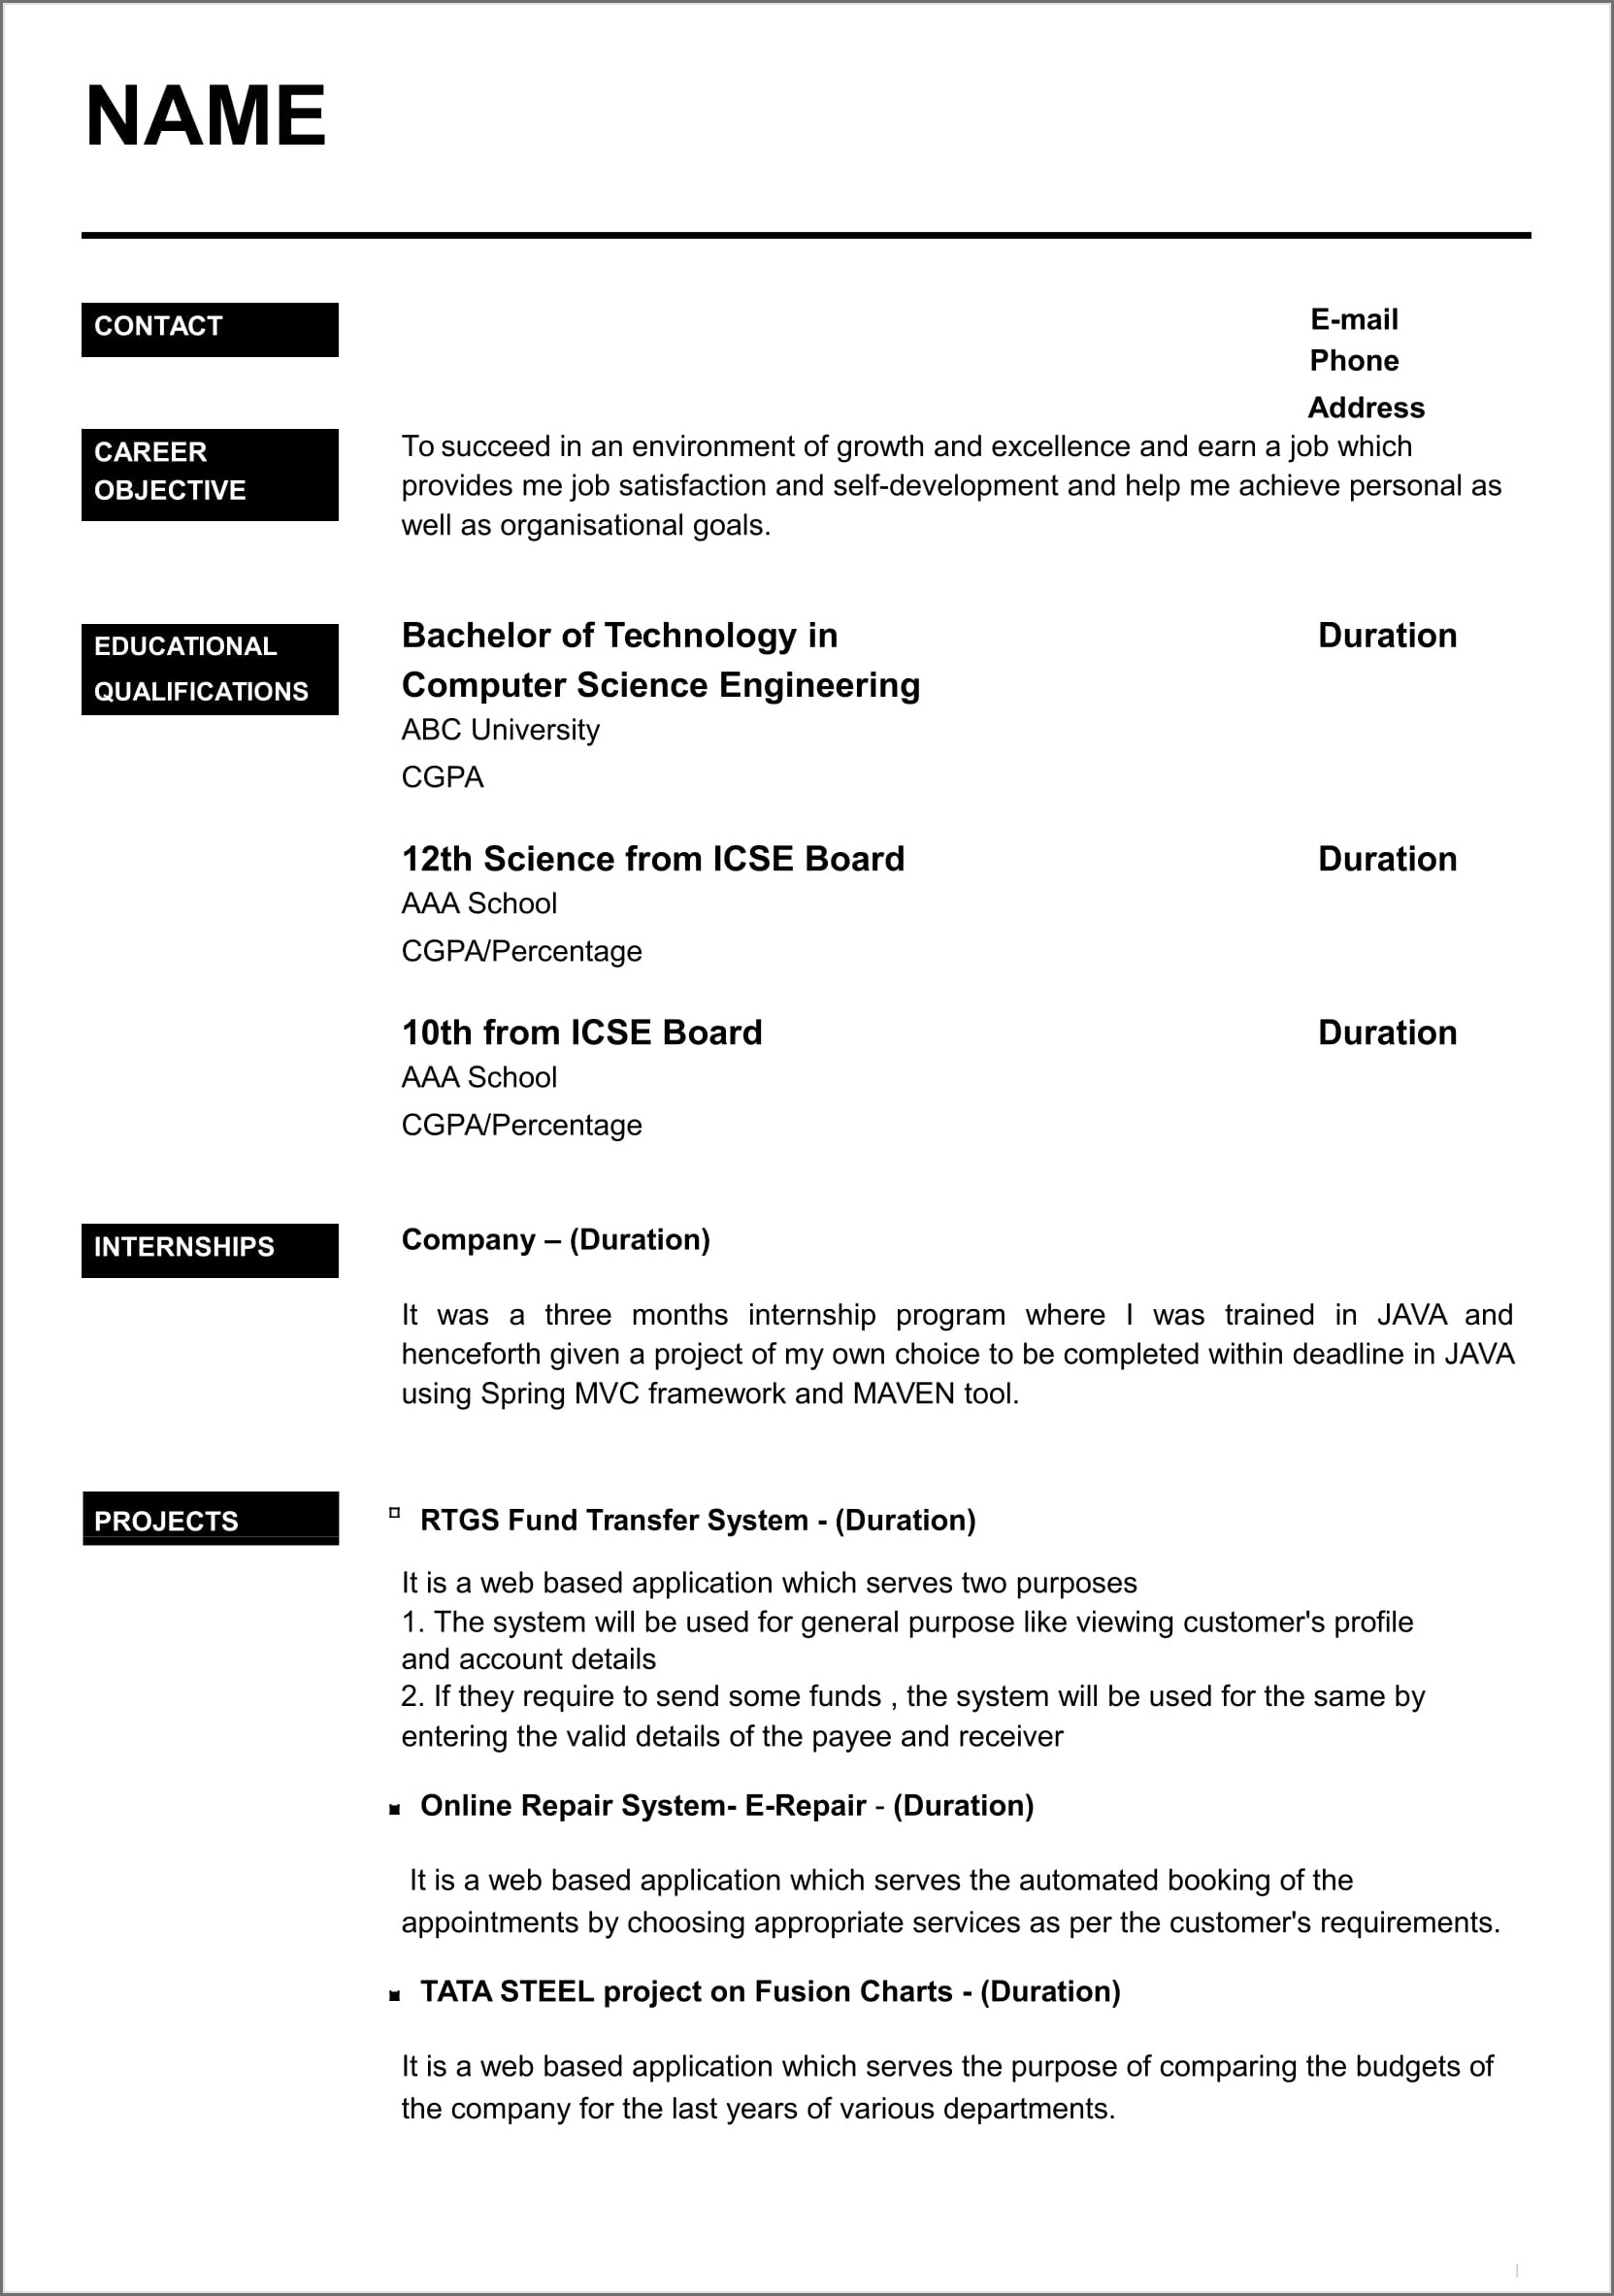 Resume Format For Fresher Teacher Jobsample